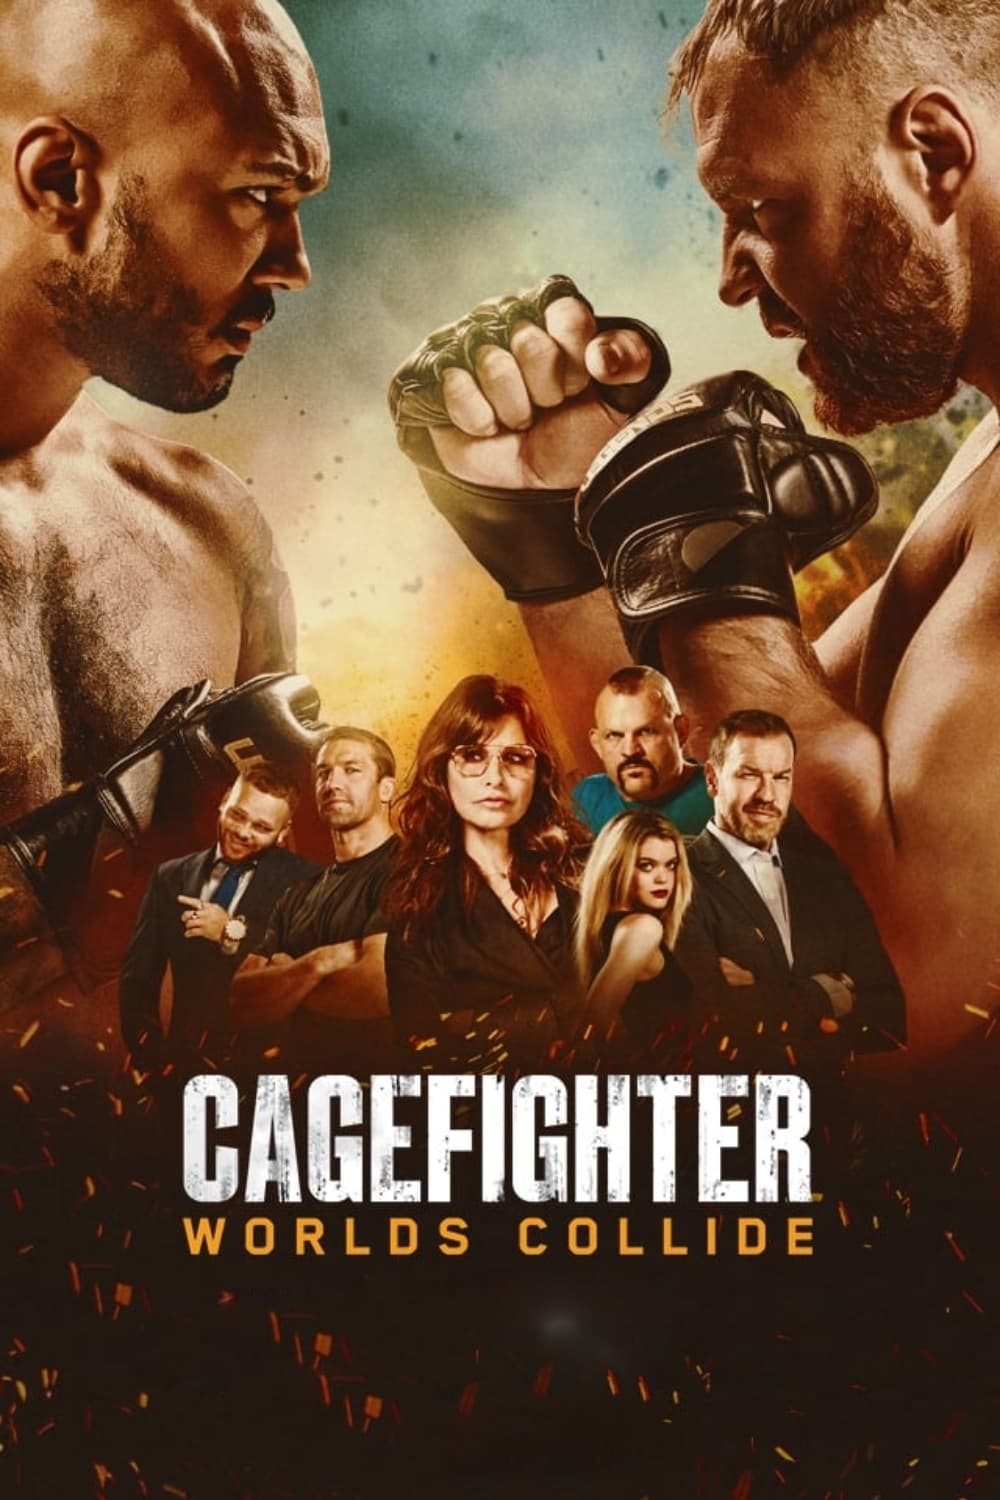 Cagefighter on FREECABLE TV